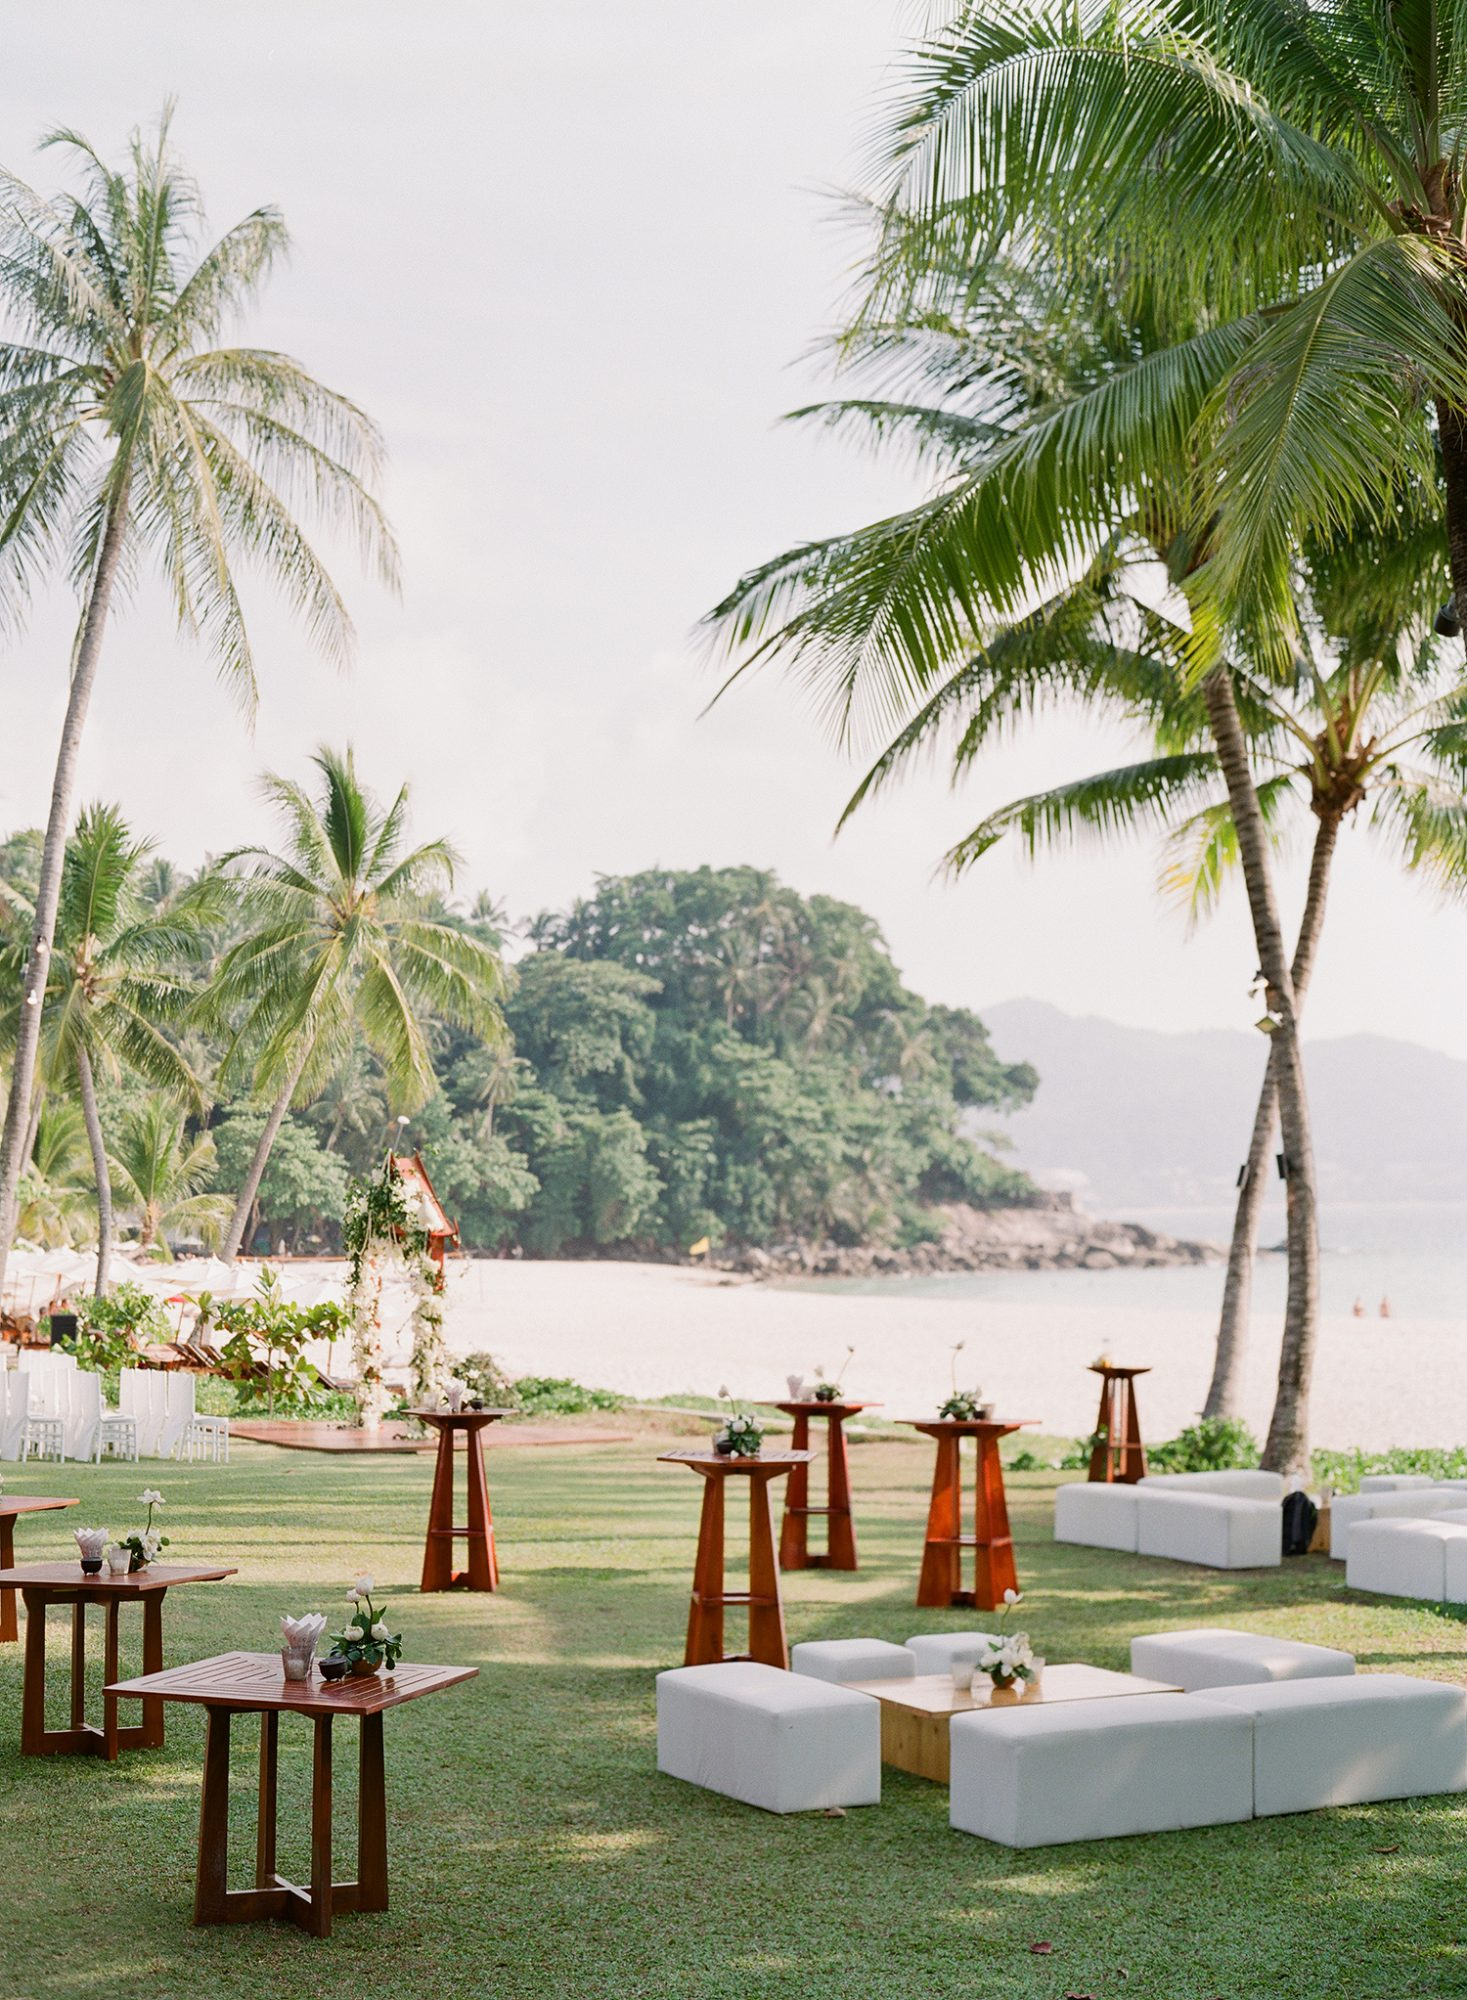 stacy brad wedding cocktail hour set up under palm trees